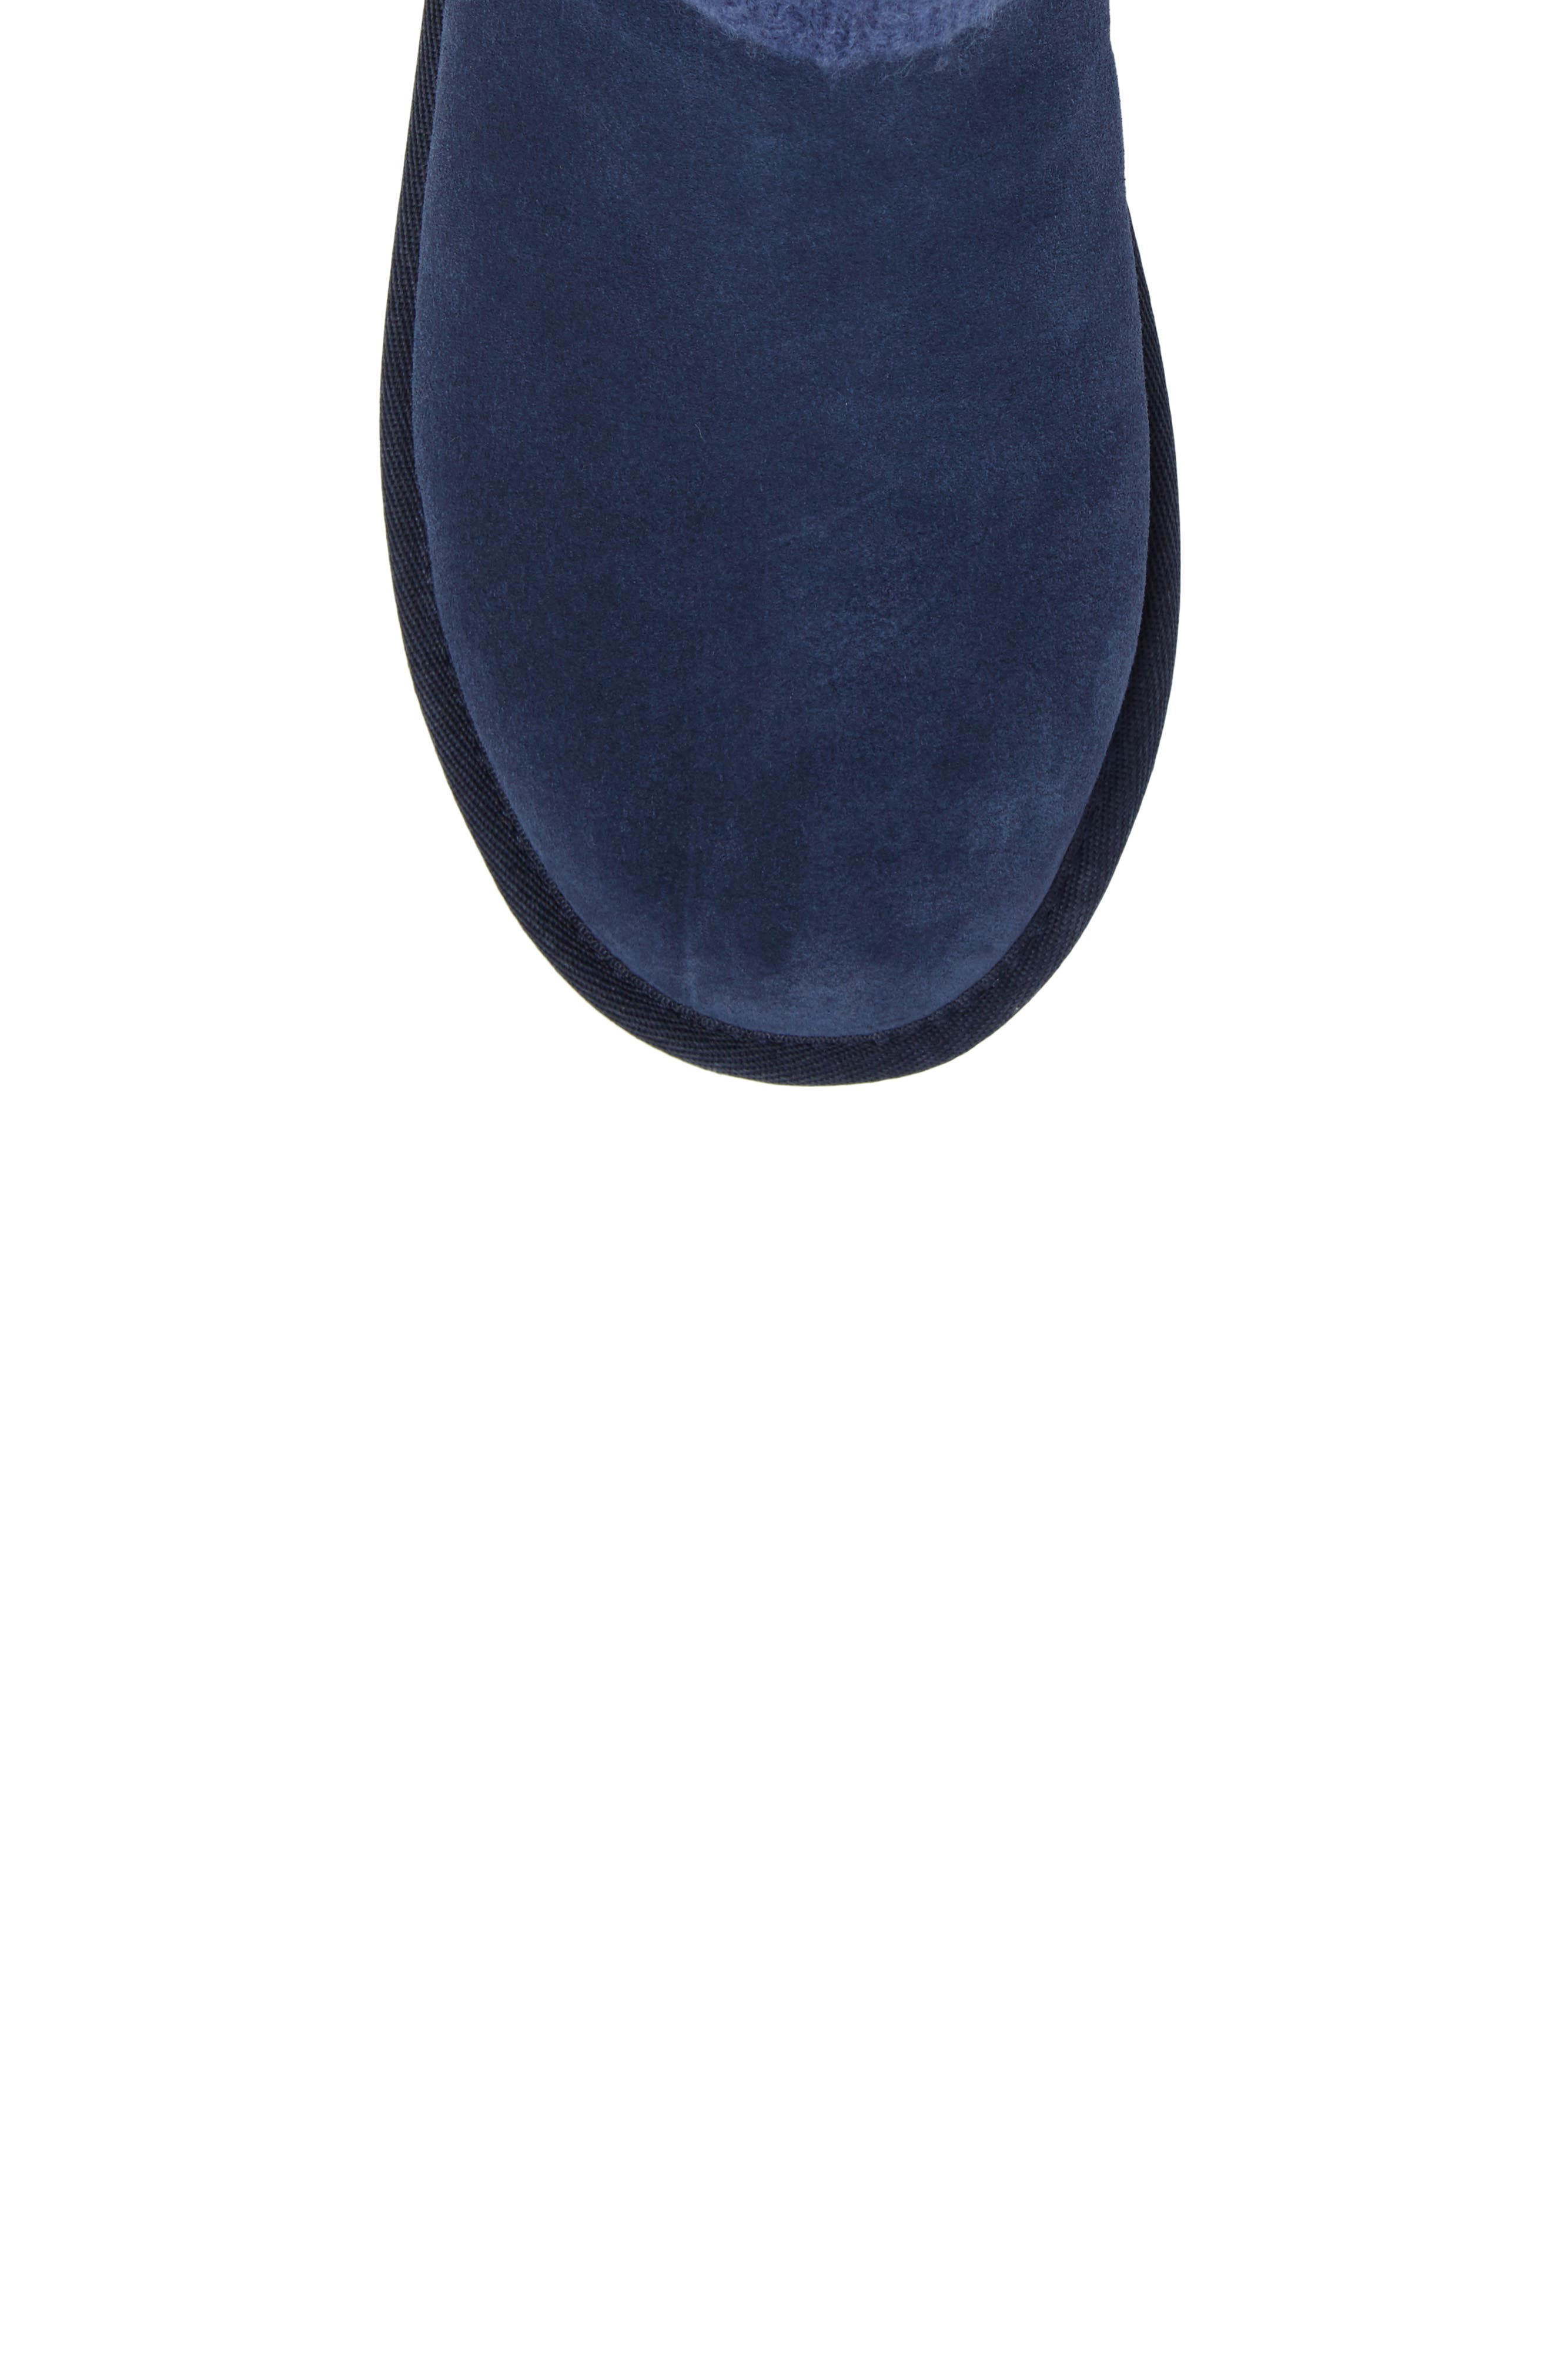 Saela Icelandic Boot,                             Alternate thumbnail 5, color,                             Navy Suede